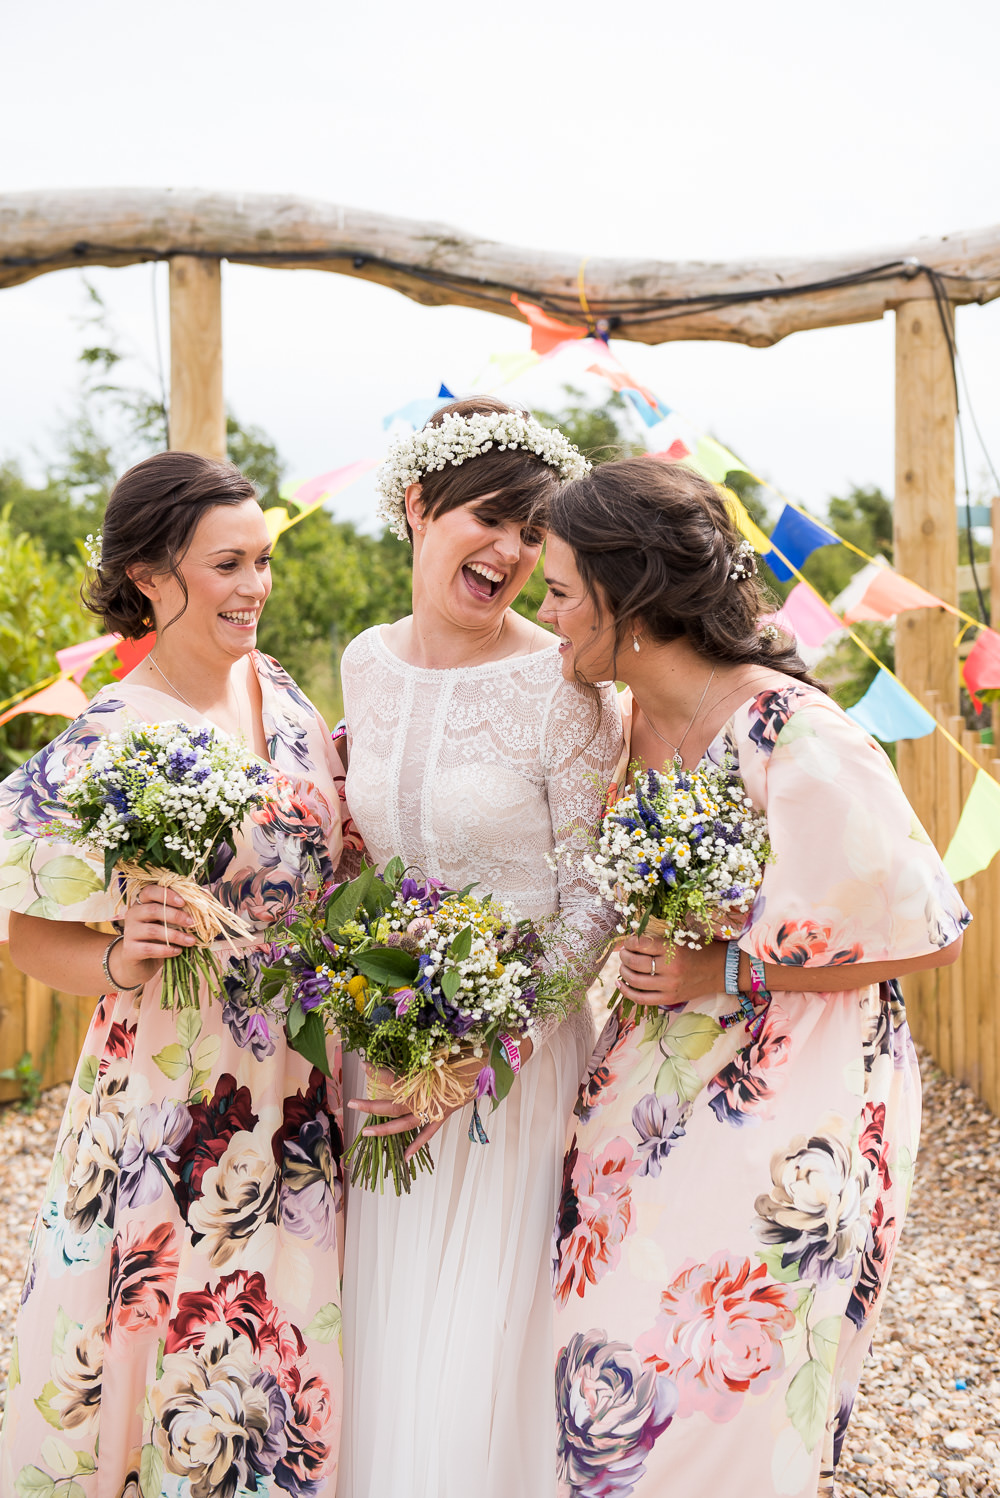 Bride Bridal Long Sleeve Lace Dress Lace Floral ASOS Bridesmaids Gypsophila Crown Wildflower Bouquet Inkersall Grange Farm Wedding Jessica Grace Photography